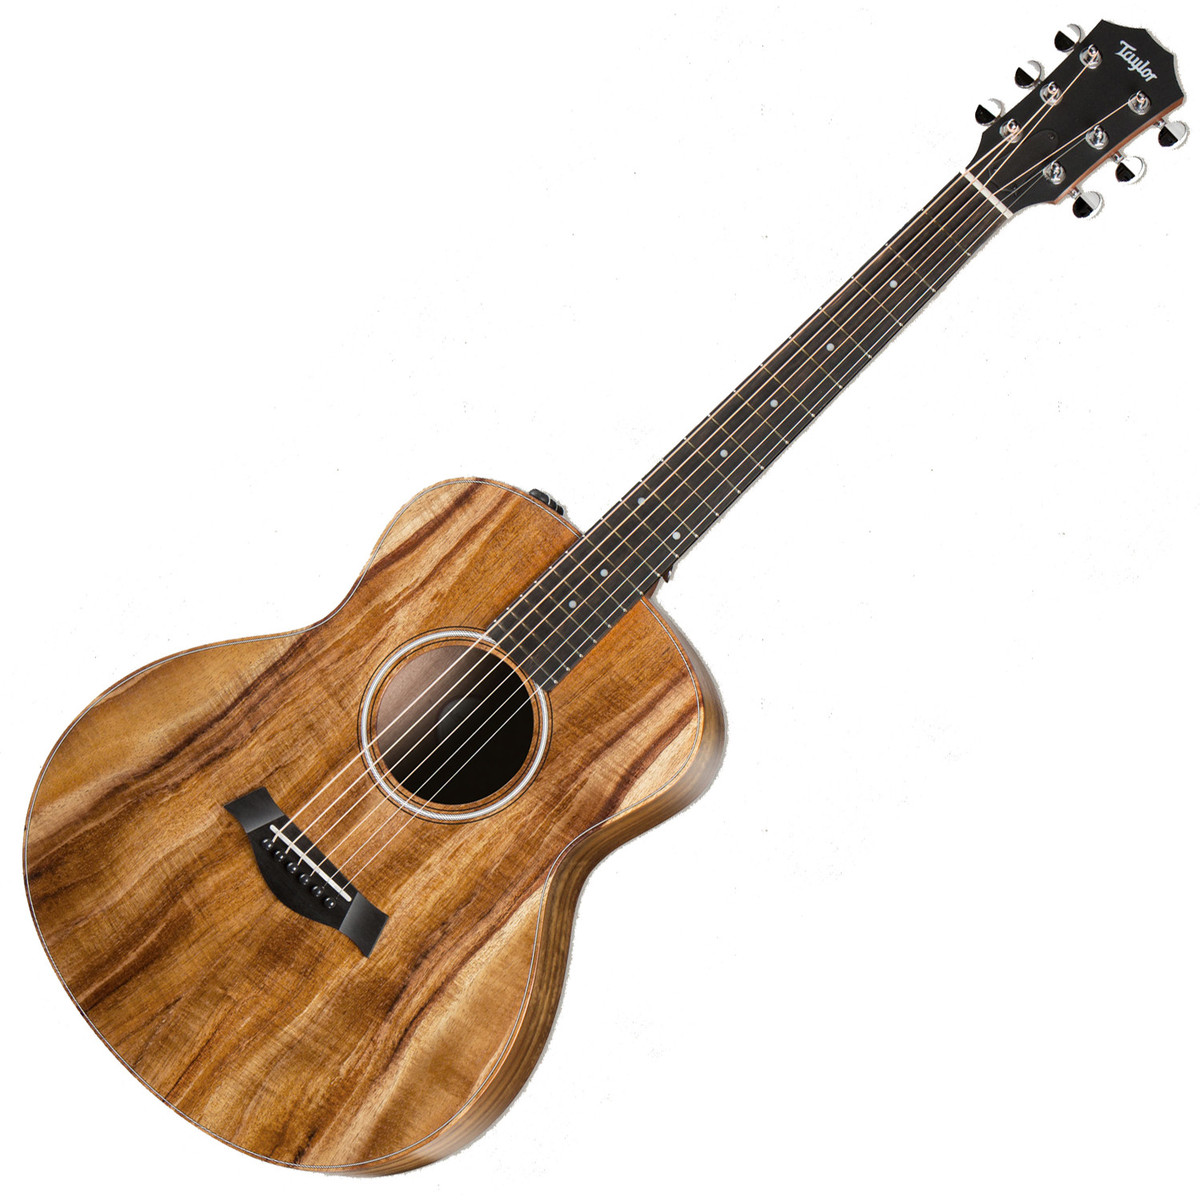 Taylor Mini Koa : taylor gs mini e koa electro acoustic guitar nearly new at ~ Hamham.info Haus und Dekorationen